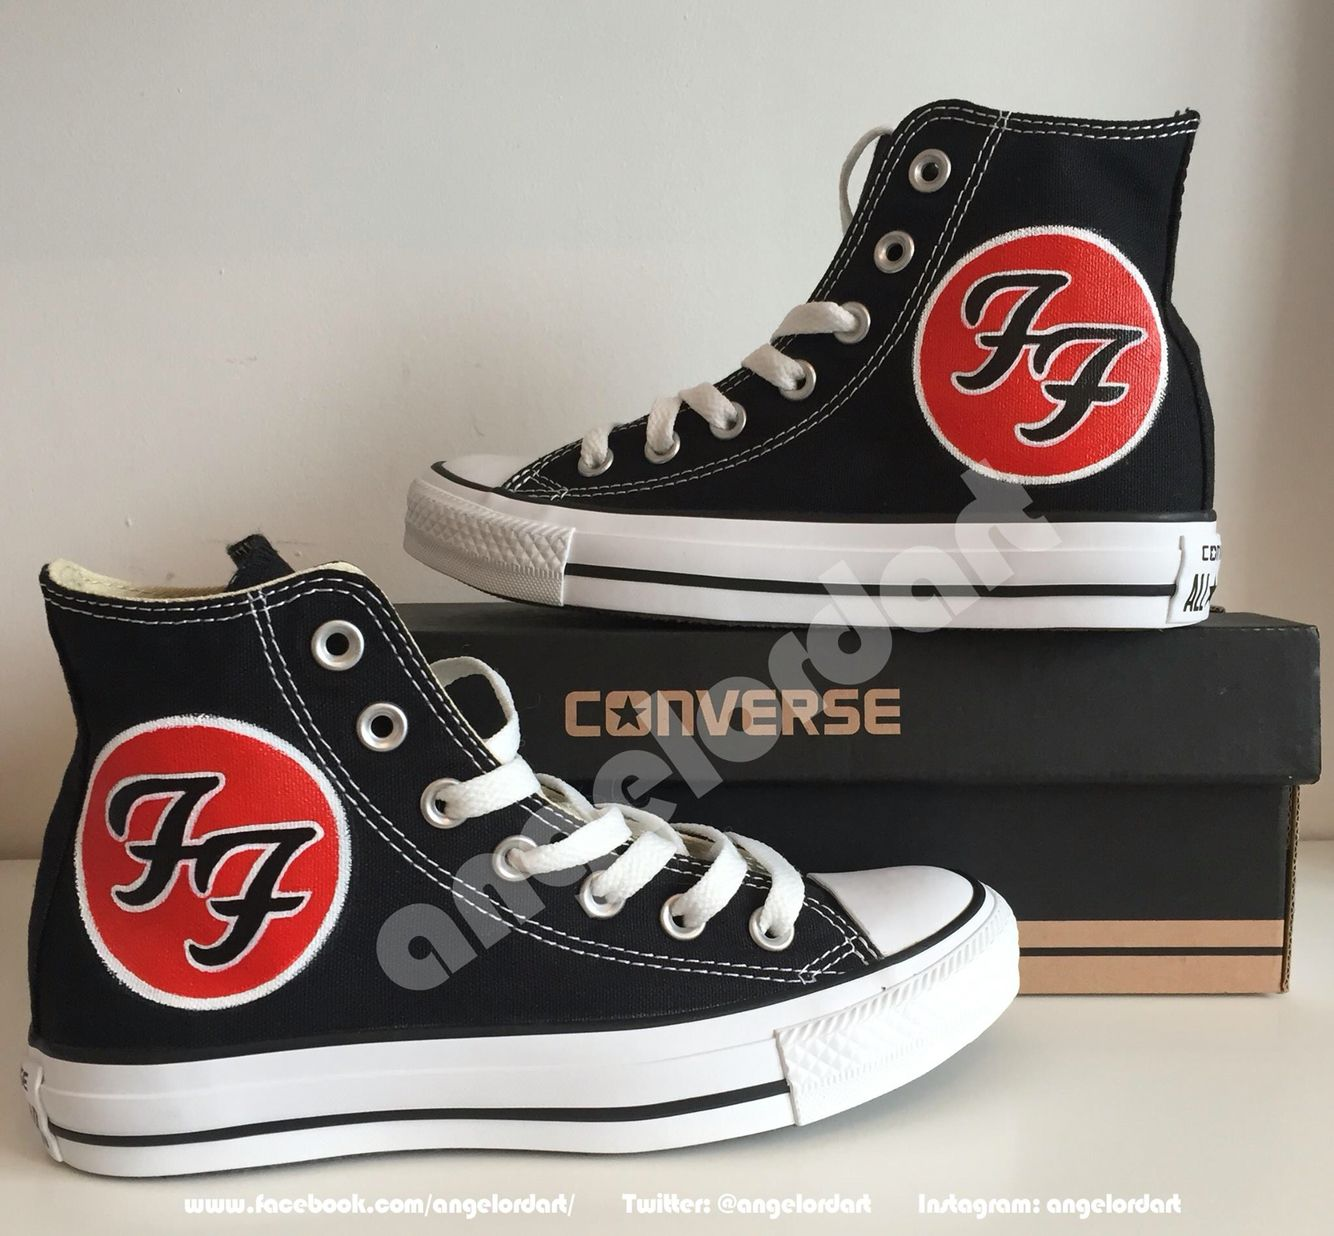 Custom painted Foo Fighters Converse hi tops shoes sneakers  Facebook.com/angelordart/